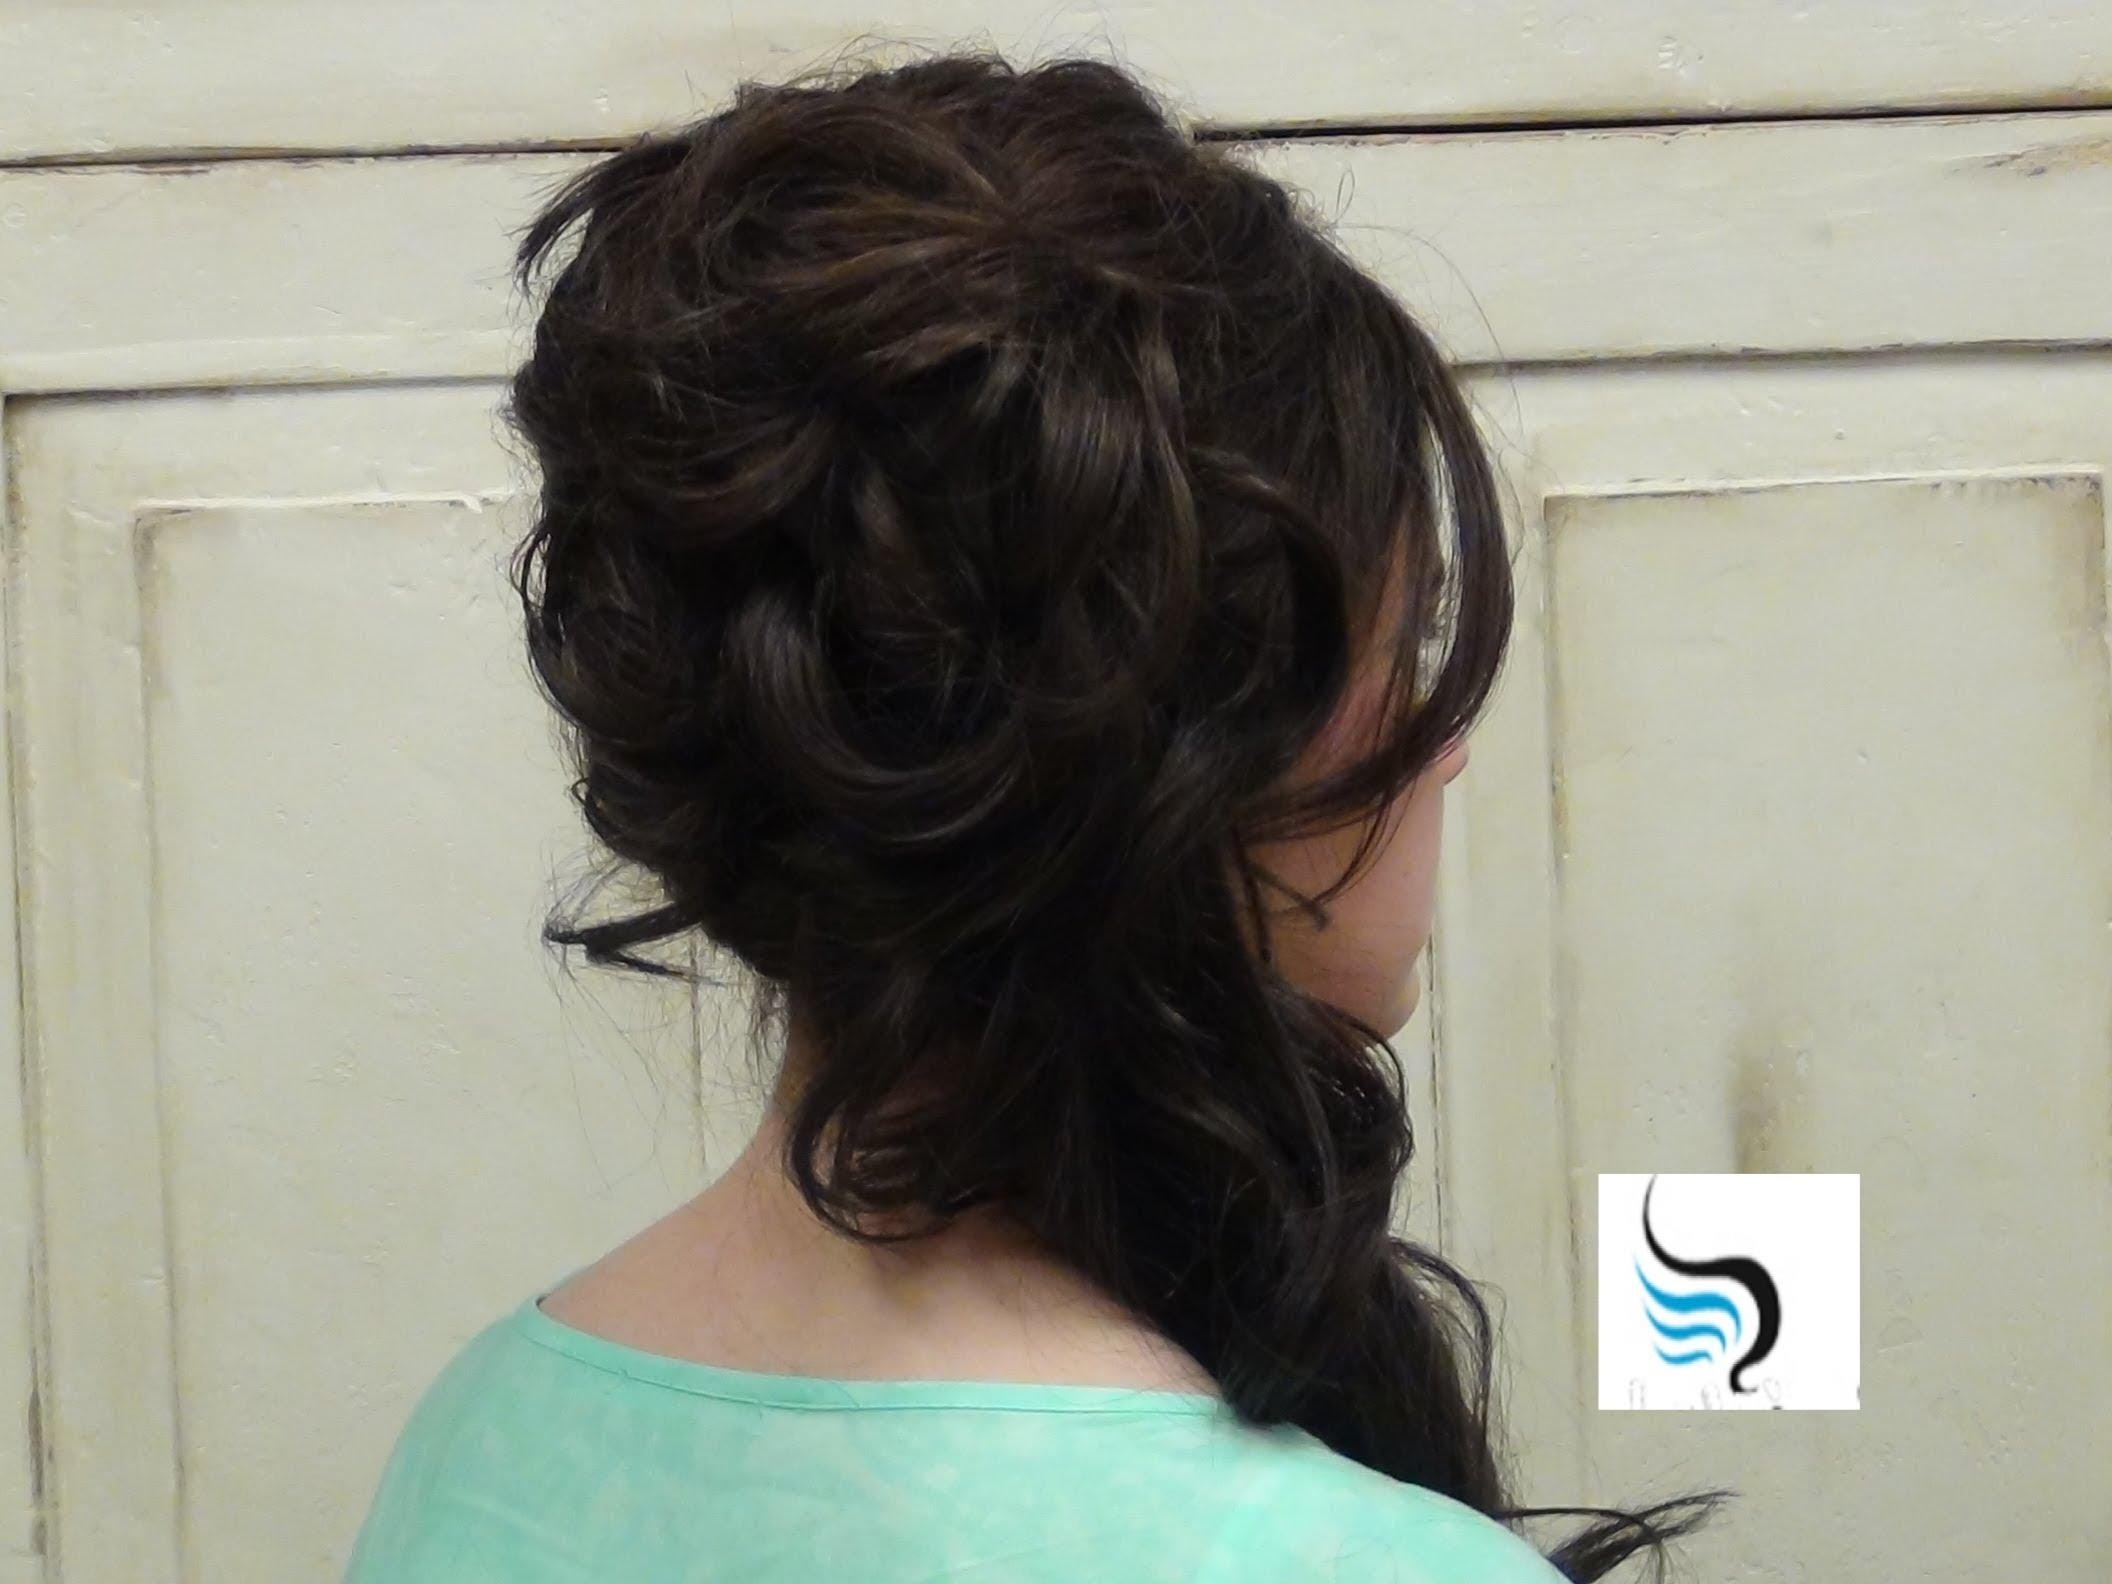 Cascading (Side Updo) For Long Hair Prom Or Weddings Hairstyles With Regard To Black Hair Updos For Weddings (View 7 of 15)